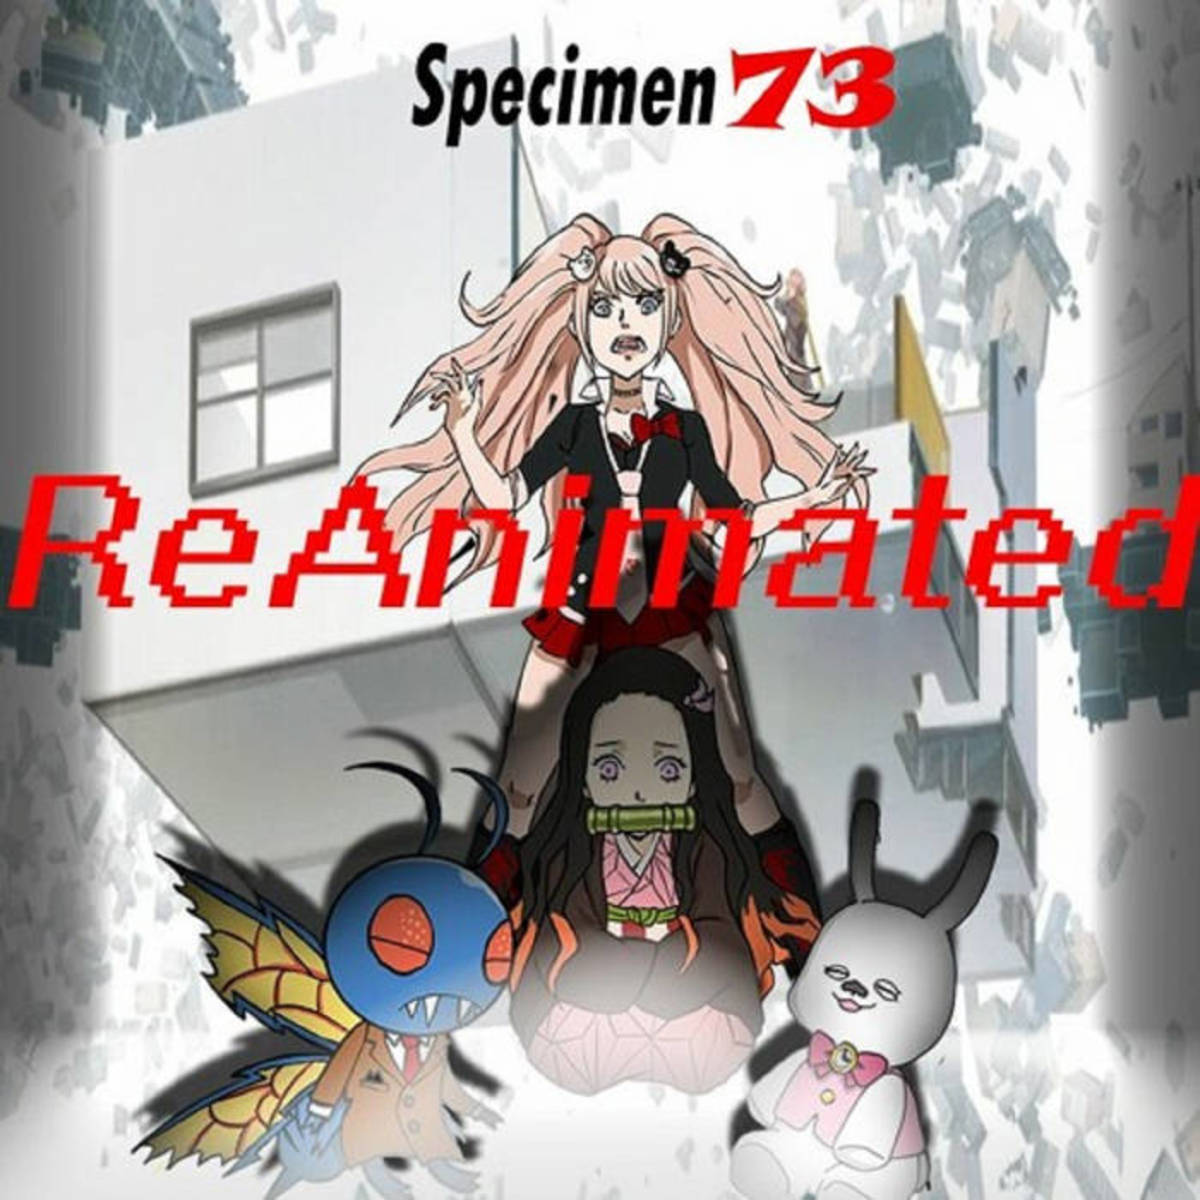 synth-ep-review-reanimated-by-specimen-73